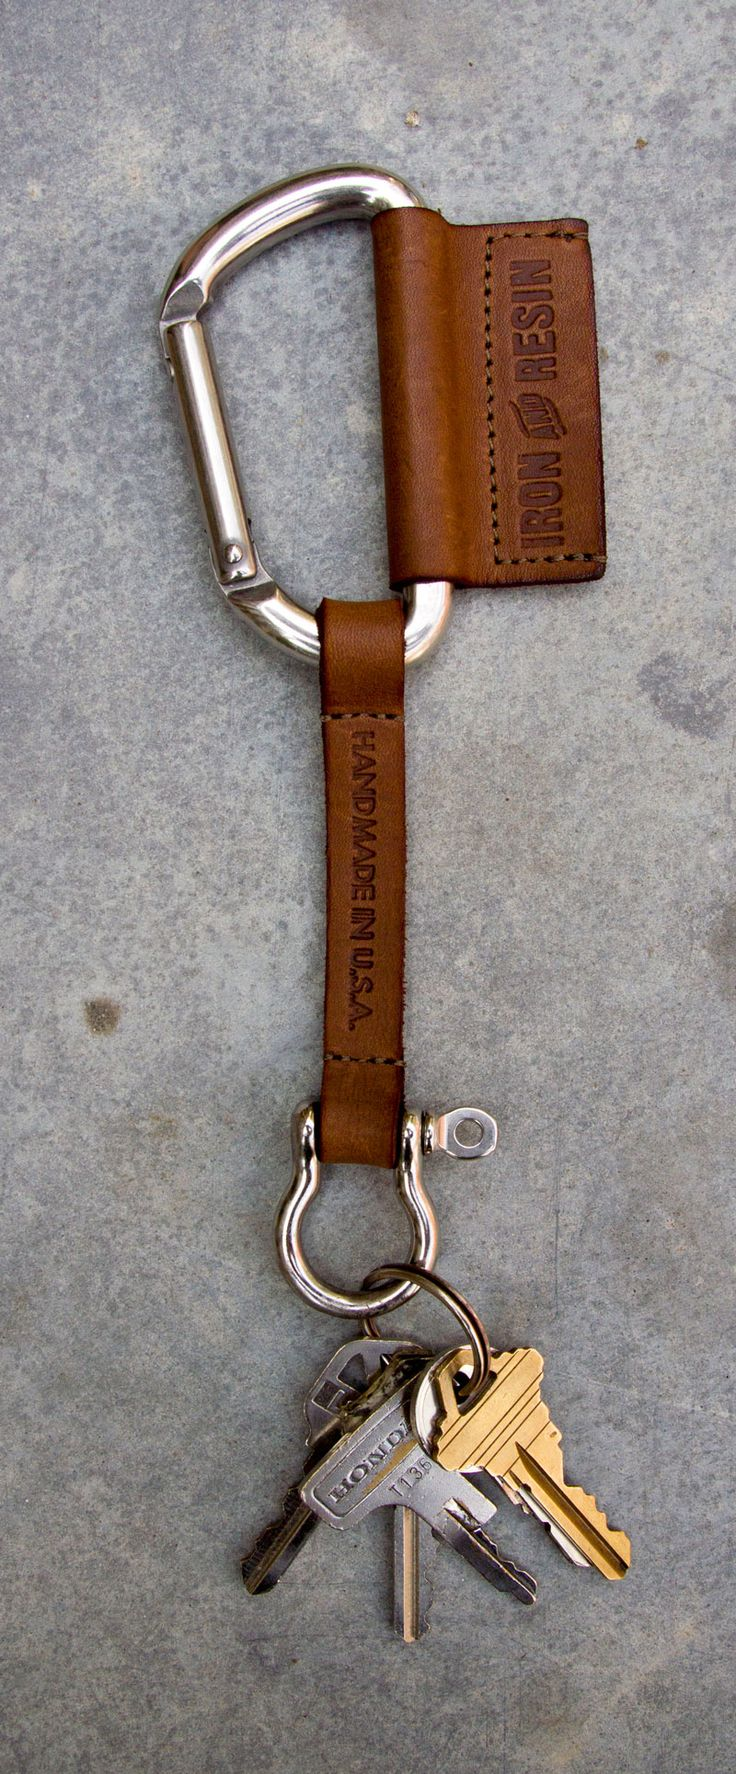 IRON & RESIN LEATHER KEY LANYARD. #ironandresin #InR #freedomriders - Crafting Now